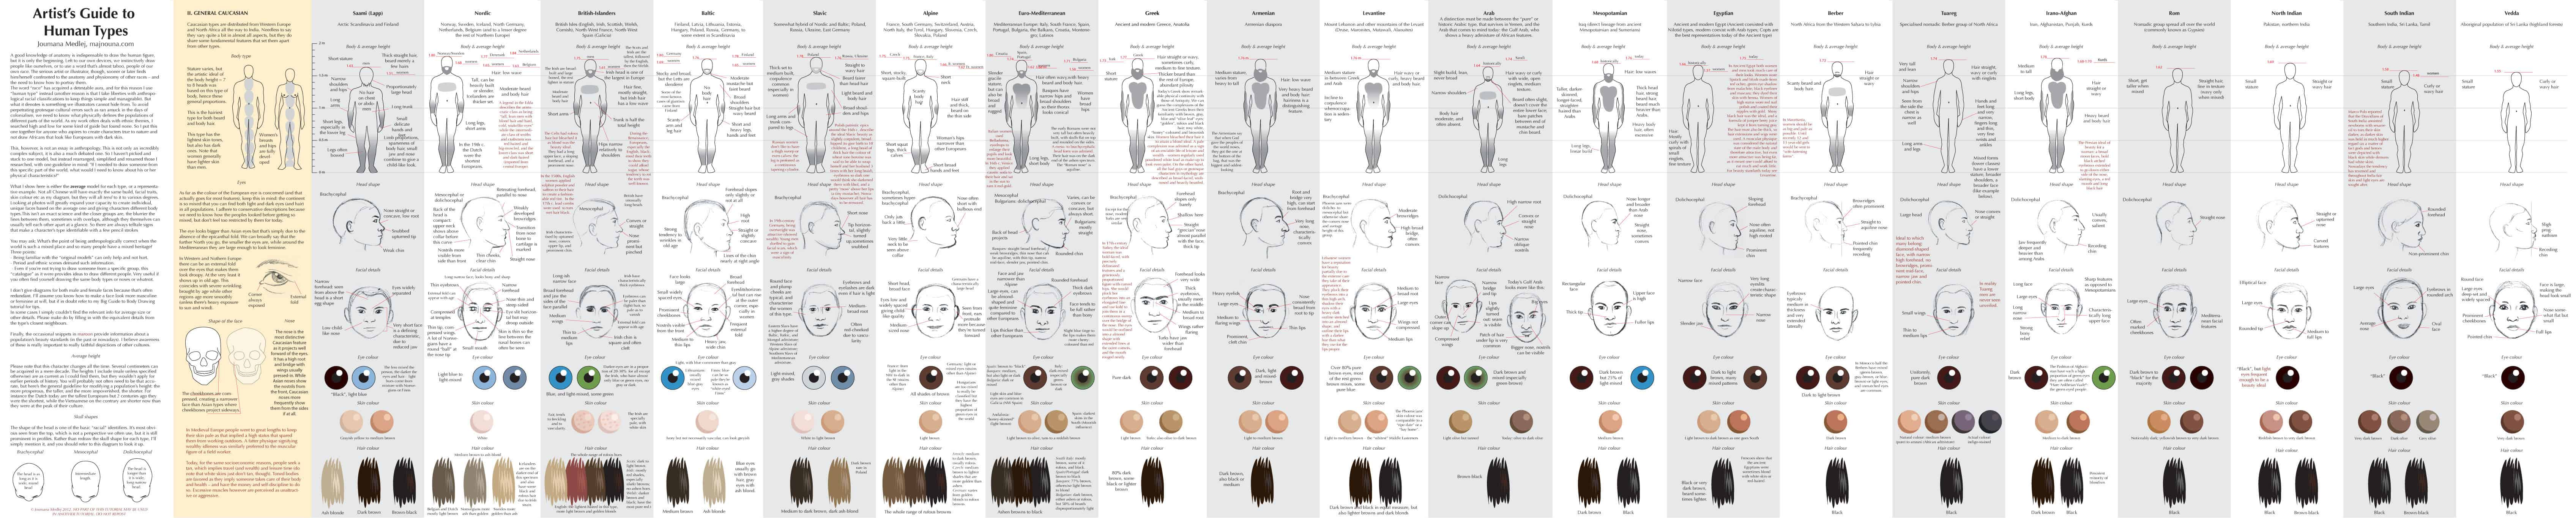 Guide to Human Types – Caucasian ethnotypes